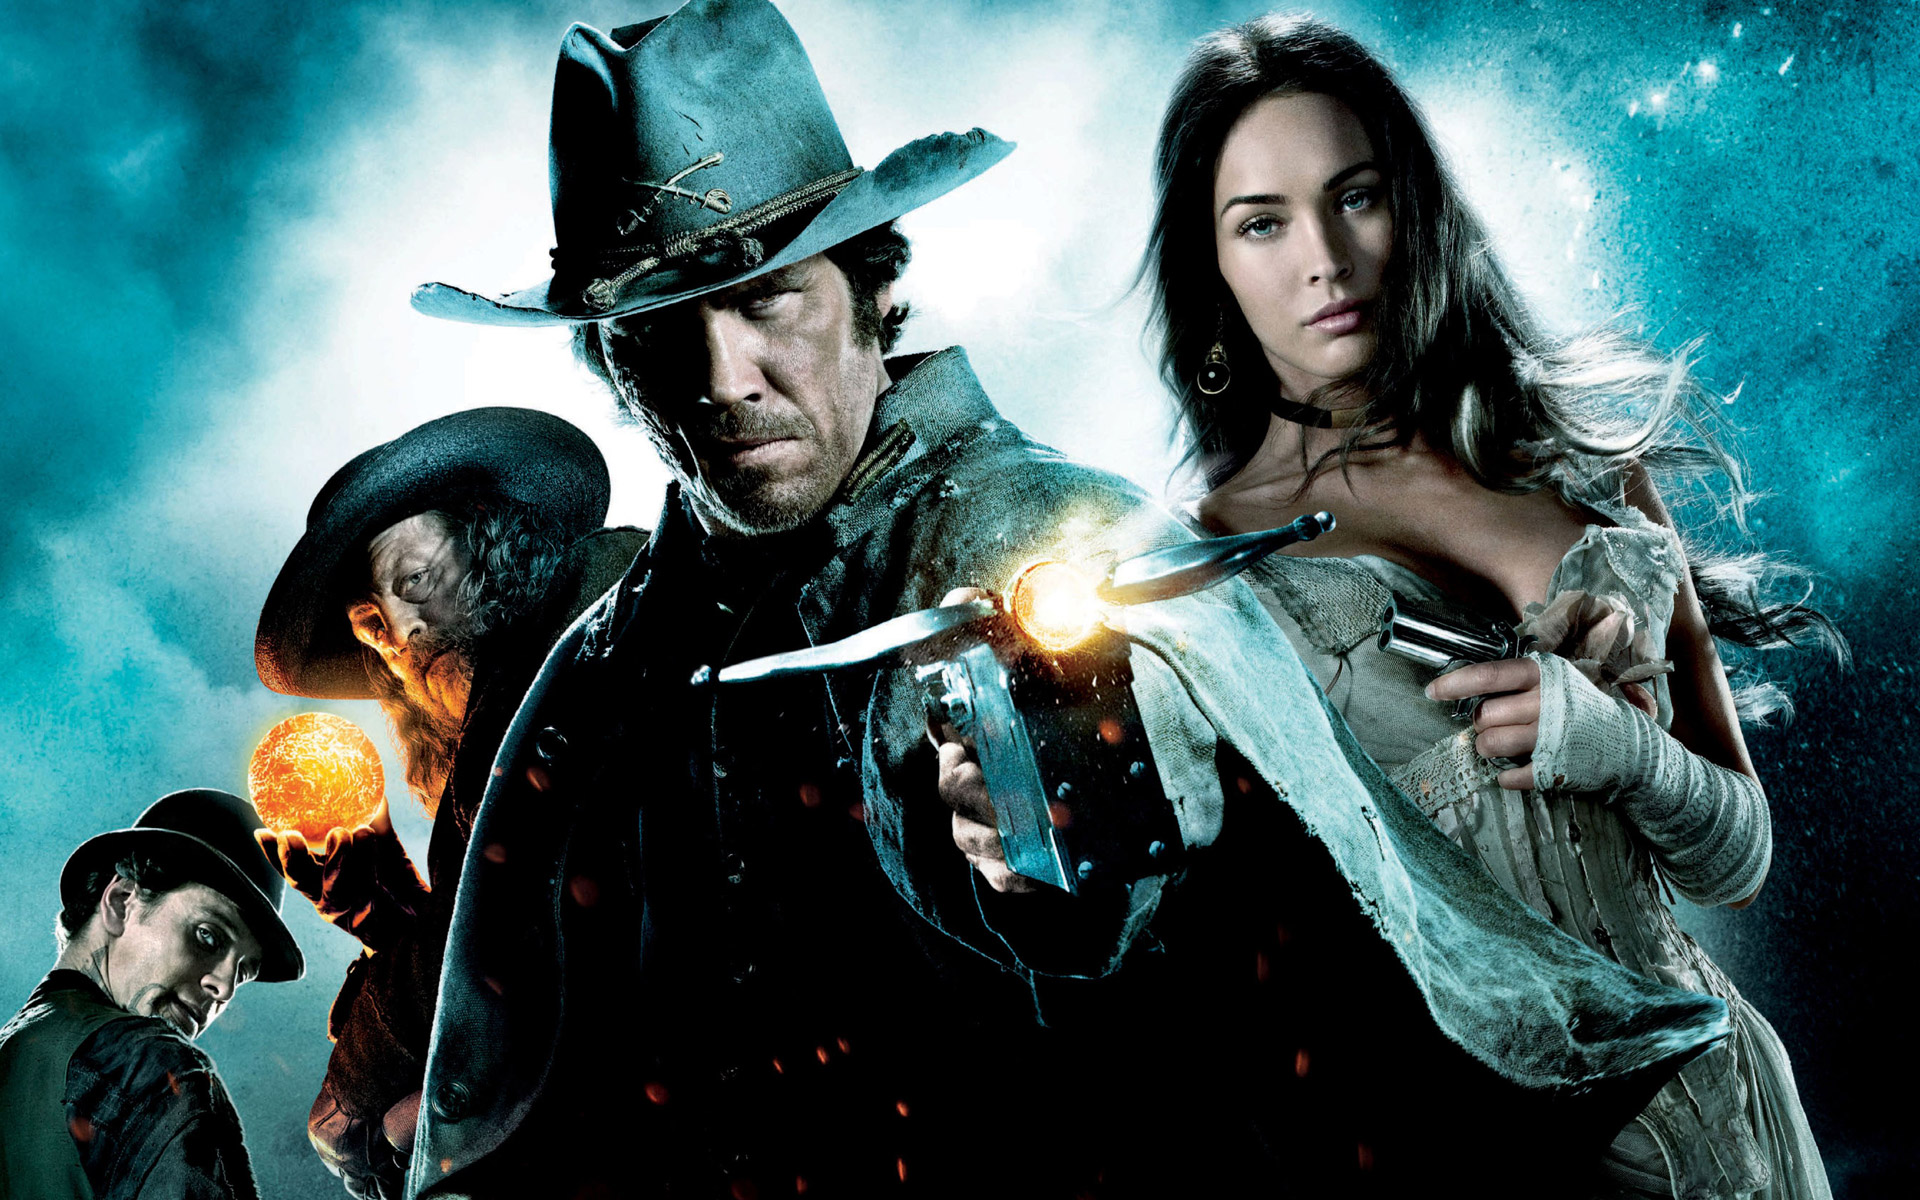 Jonah Hex 2010 Movie 99.58 Kb